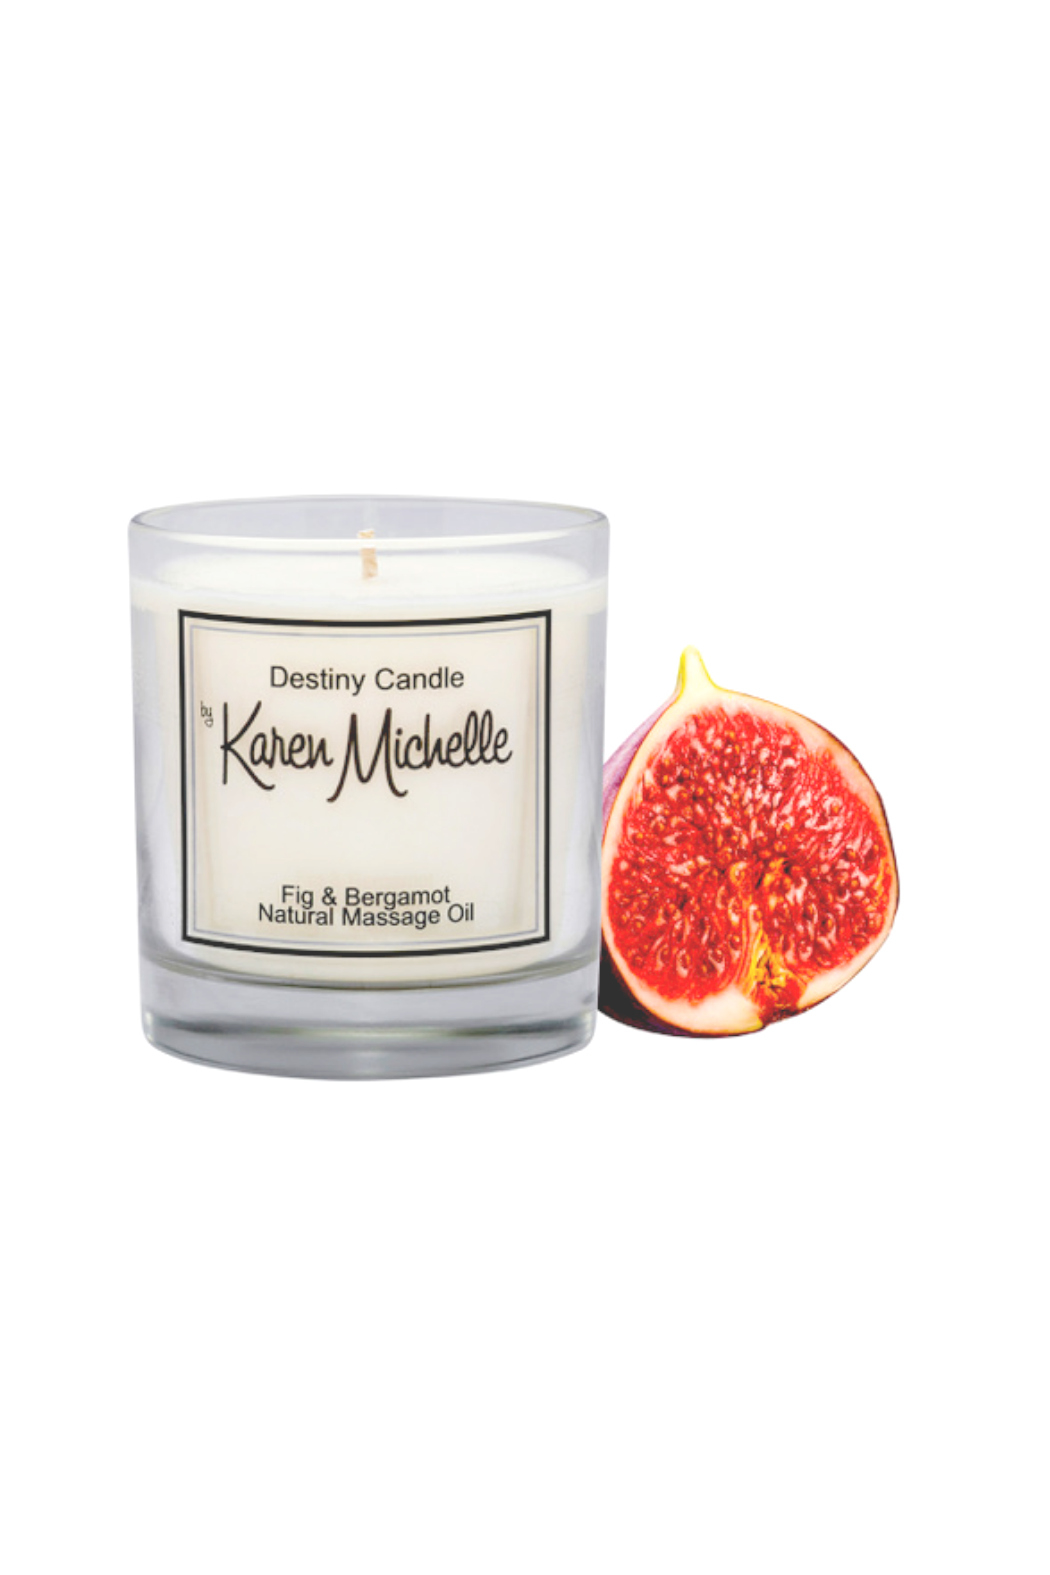 Destiny Candle by Karen Michelle Fig & Bergamot Oil Candle - Main Image